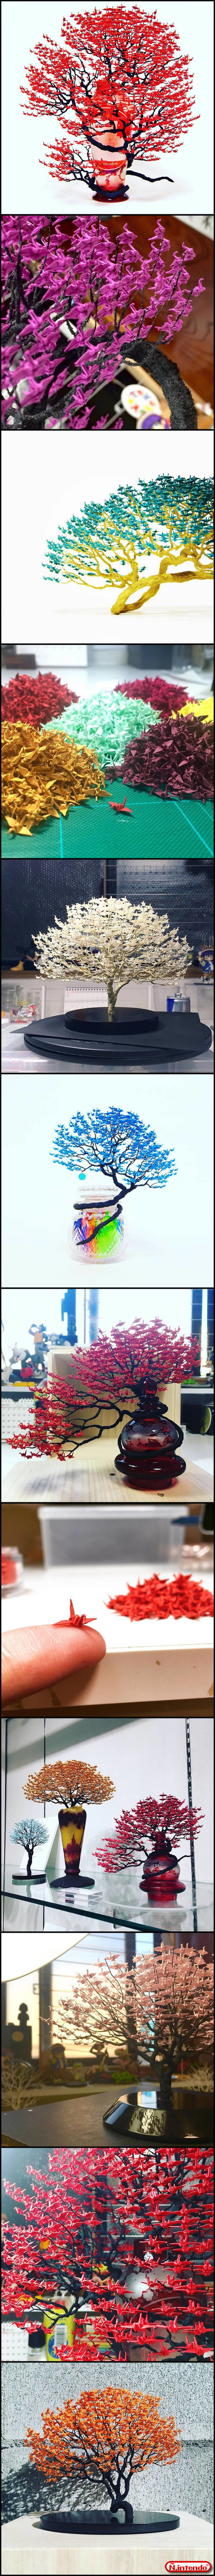 Bonsai De Origamis